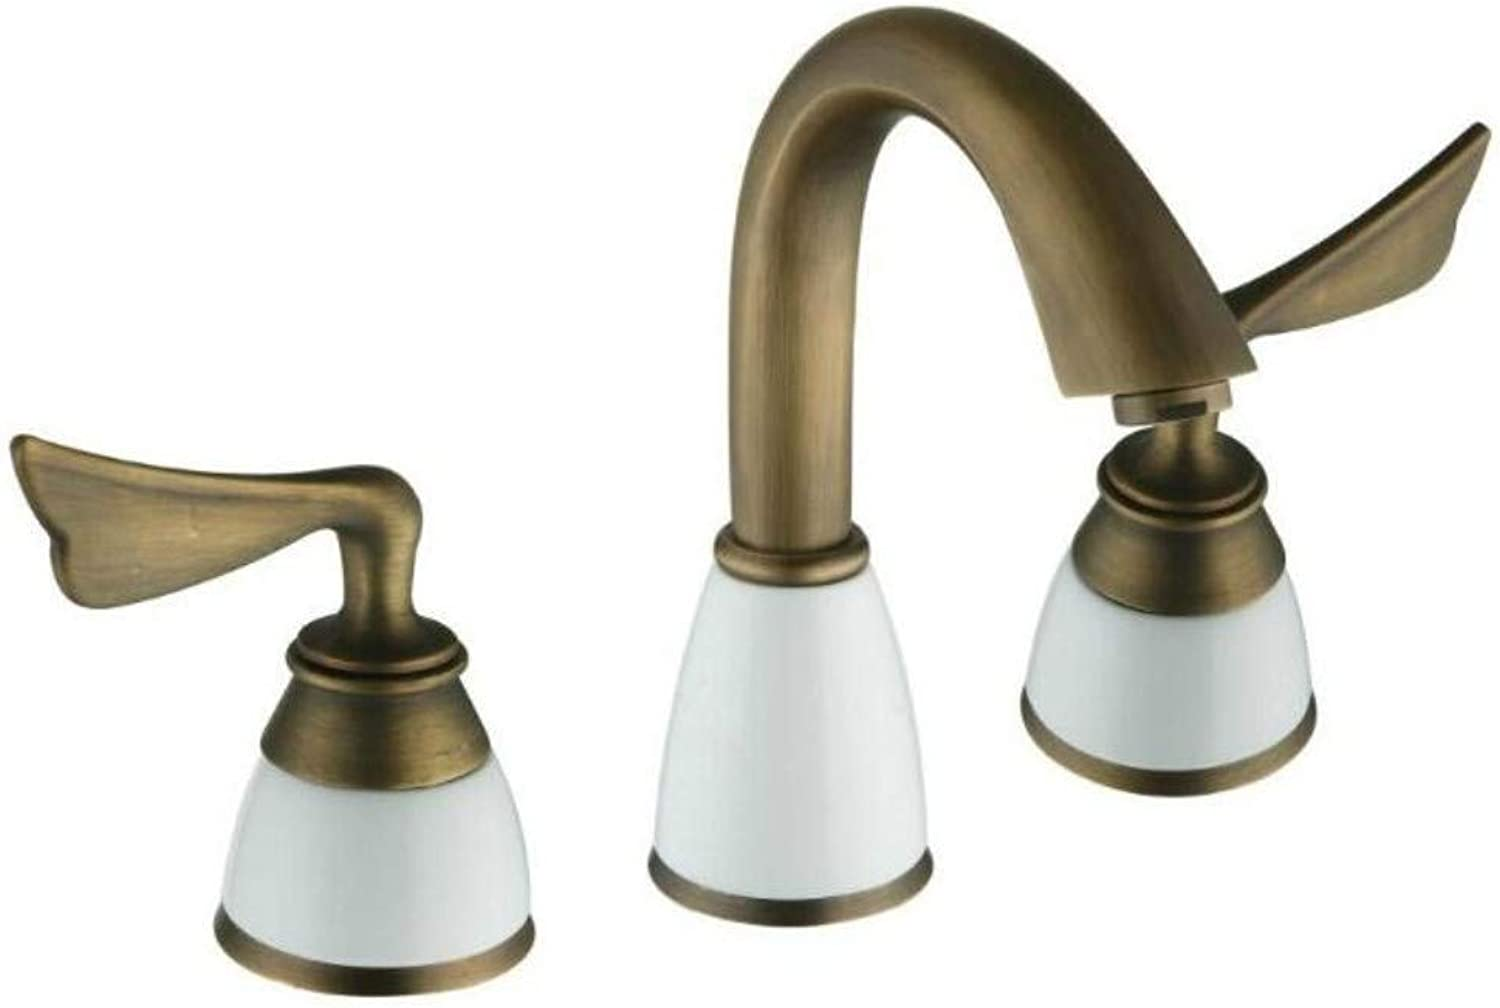 LYBSD Bathroom Sink Taps Hot And Cold Basin Faucet Bathroom Fashion Sink Kitchen Single Faucet